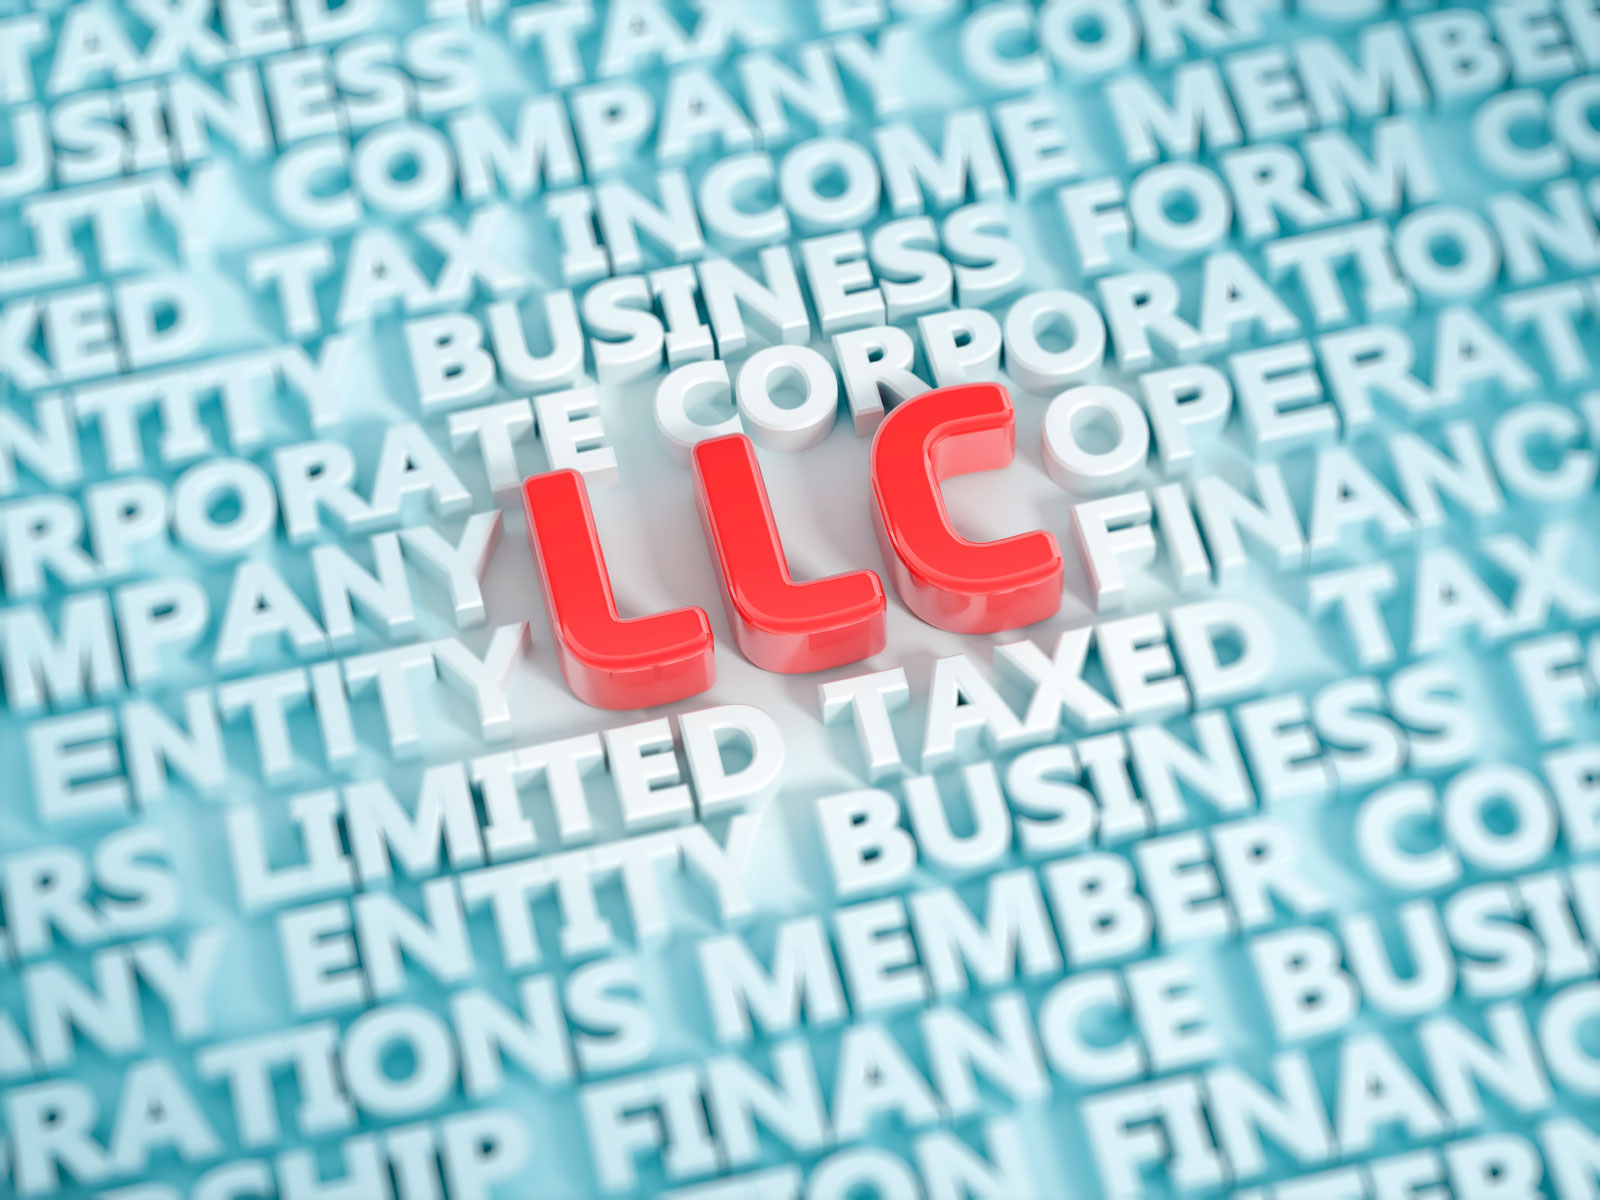 Limited Liability Companies